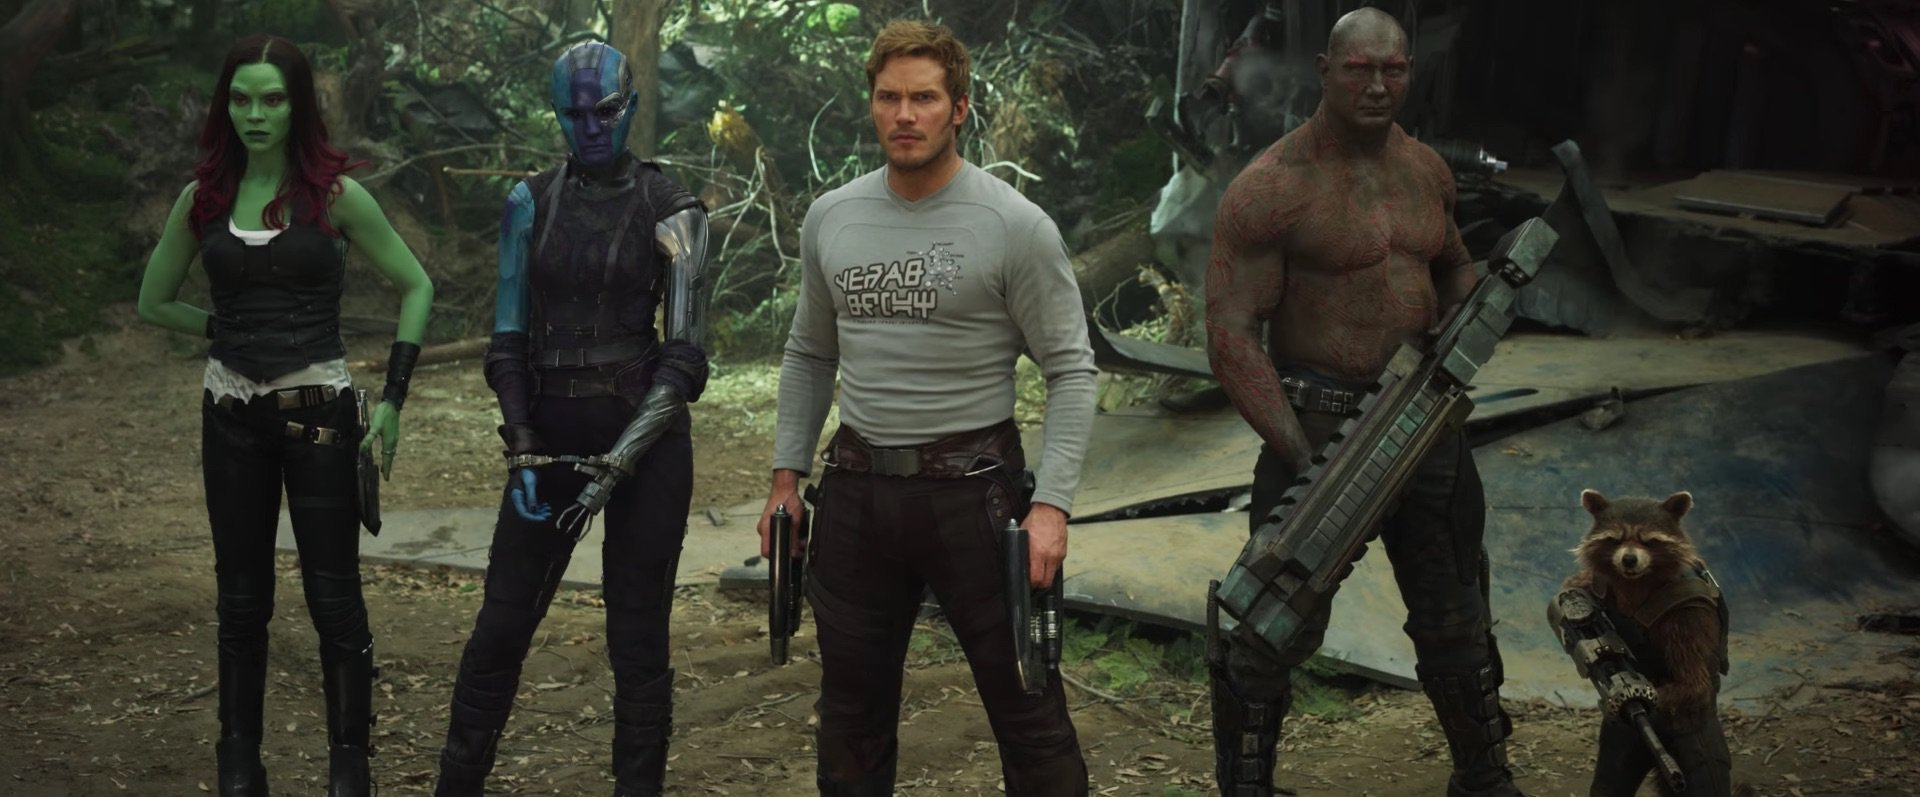 Photo of Guardians of the Galaxy Vol. 2 Movie Review